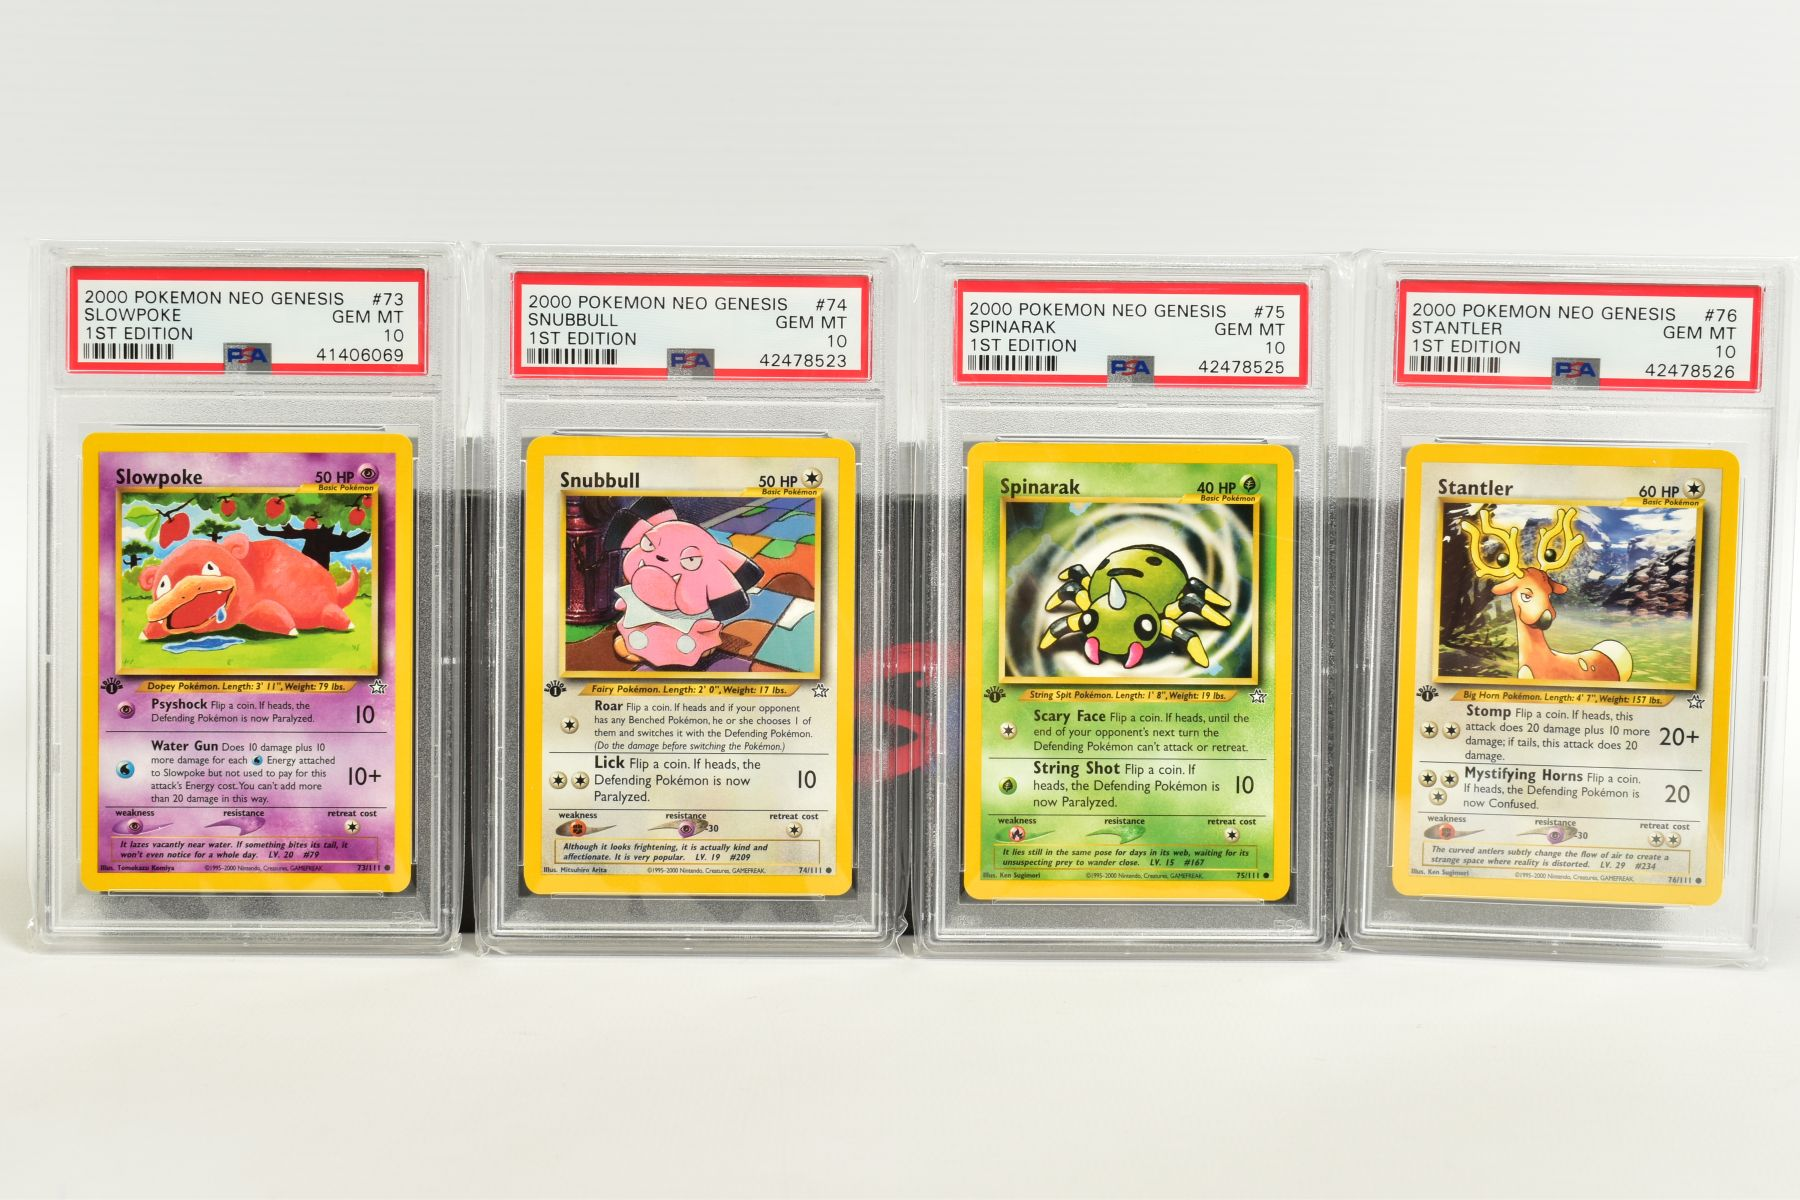 A QUANTITY OF PSA GRADED POKEMON 1ST EDITION NEO GENESIS SET CARDS, all are graded GEM MINT 10 and - Image 15 of 24